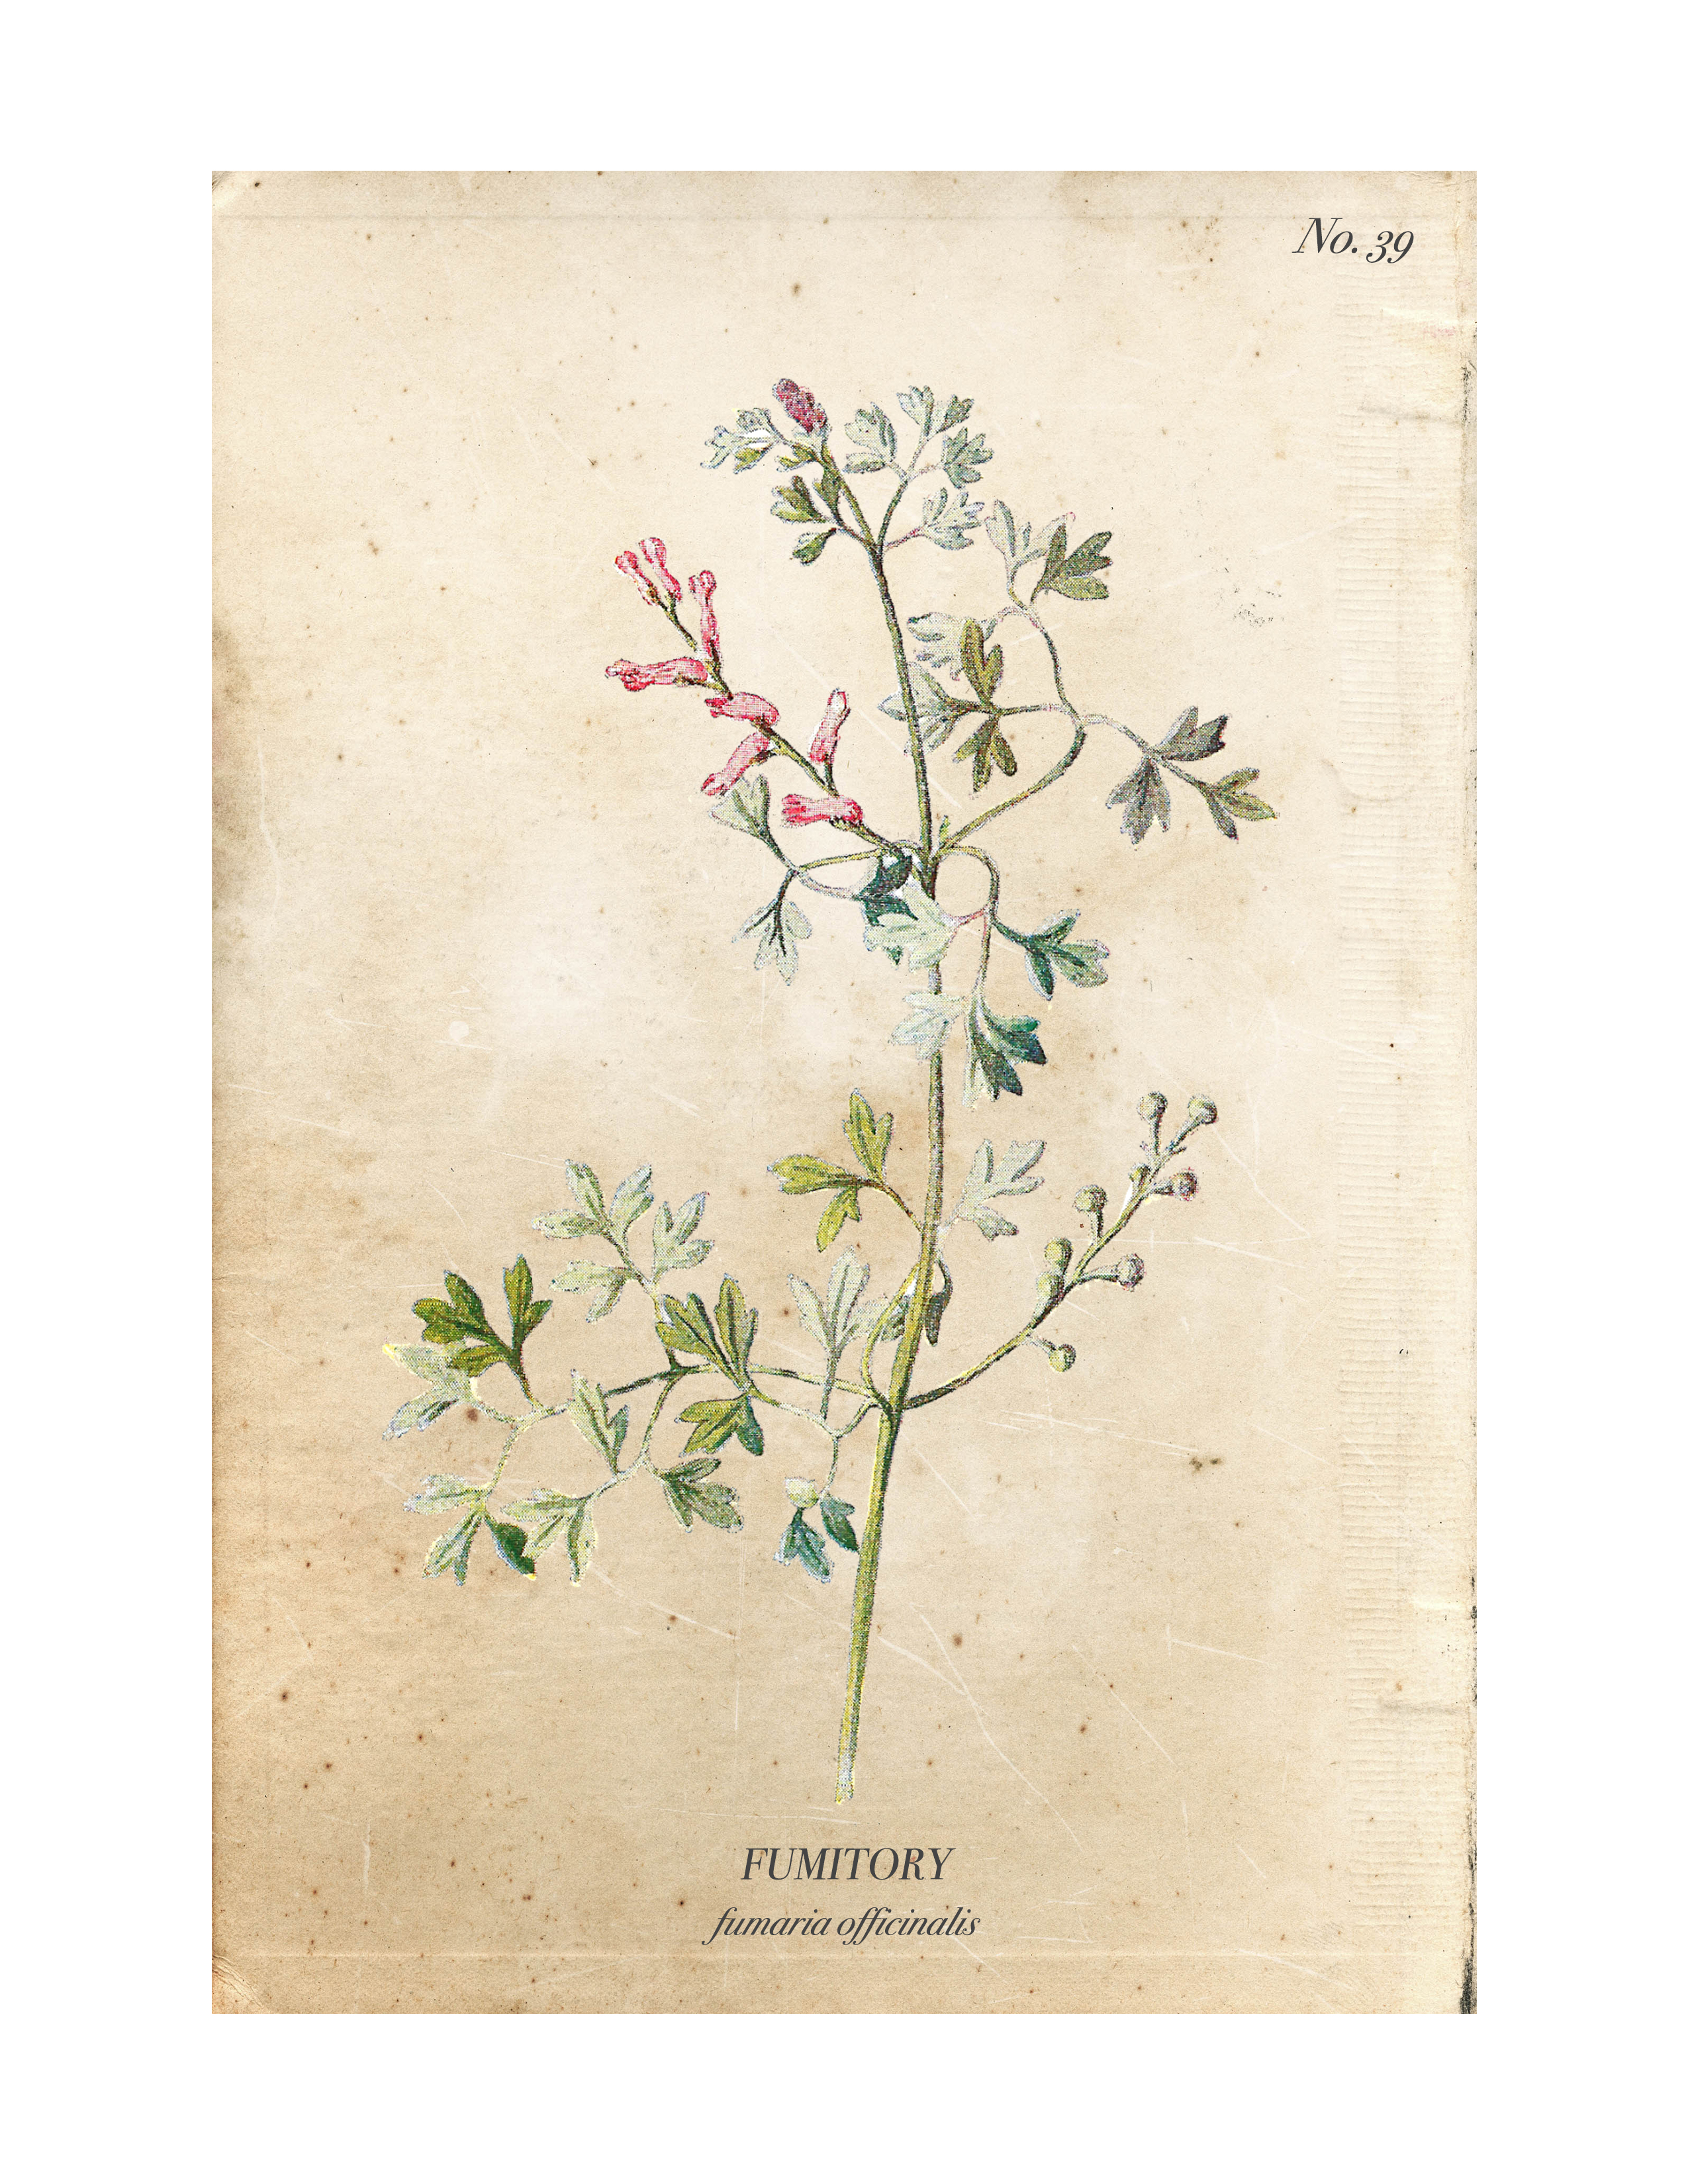 Free flower images to print banner royalty free download Free Vintage Botanical Printables banner royalty free download